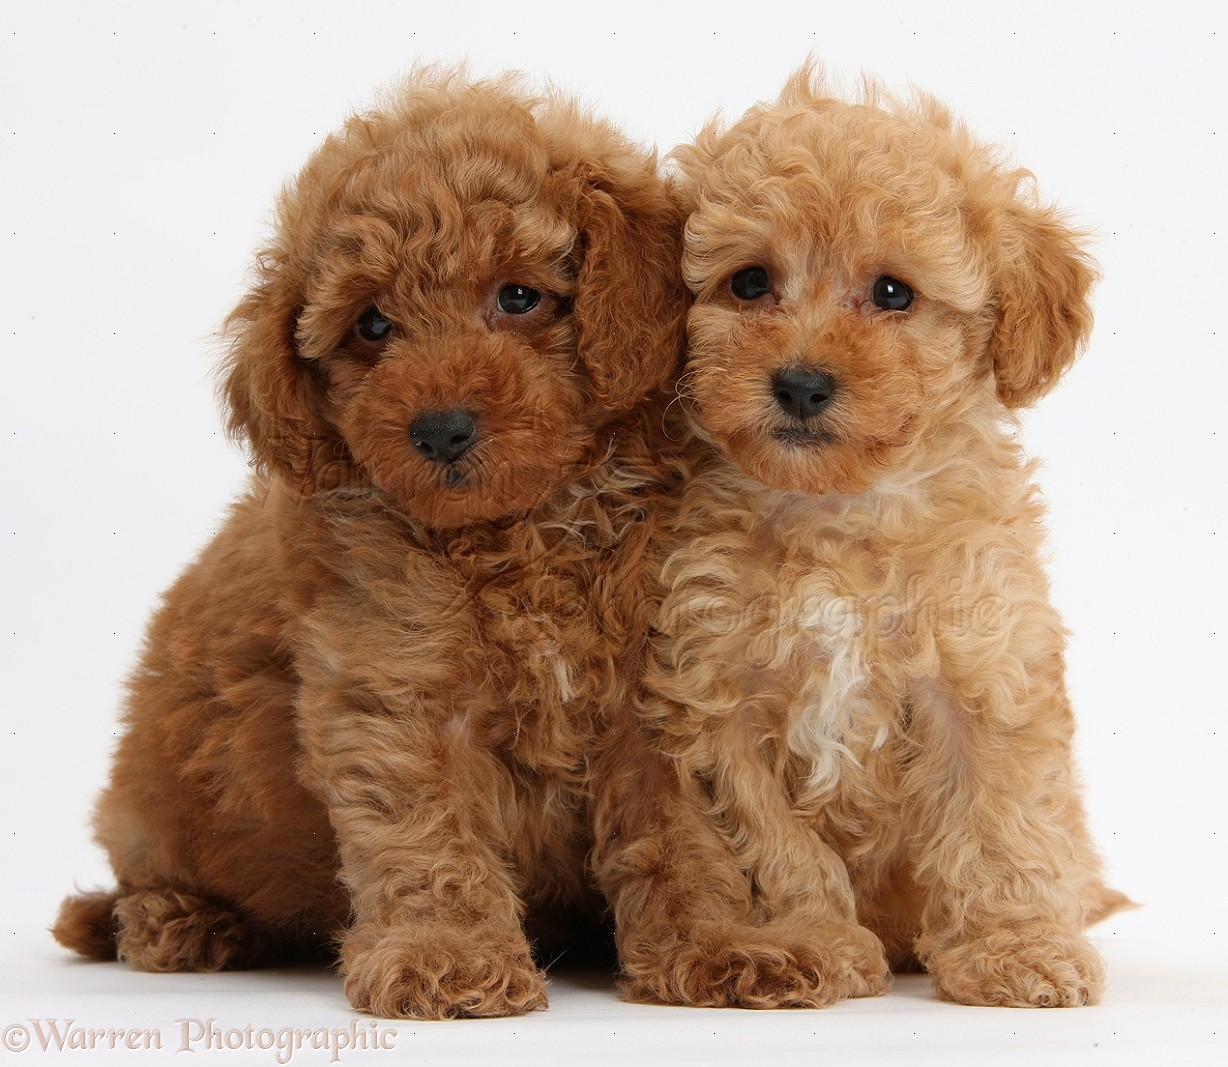 WP39329 Two cute red Toy Poodle puppies, 8 weeks old, sitting.